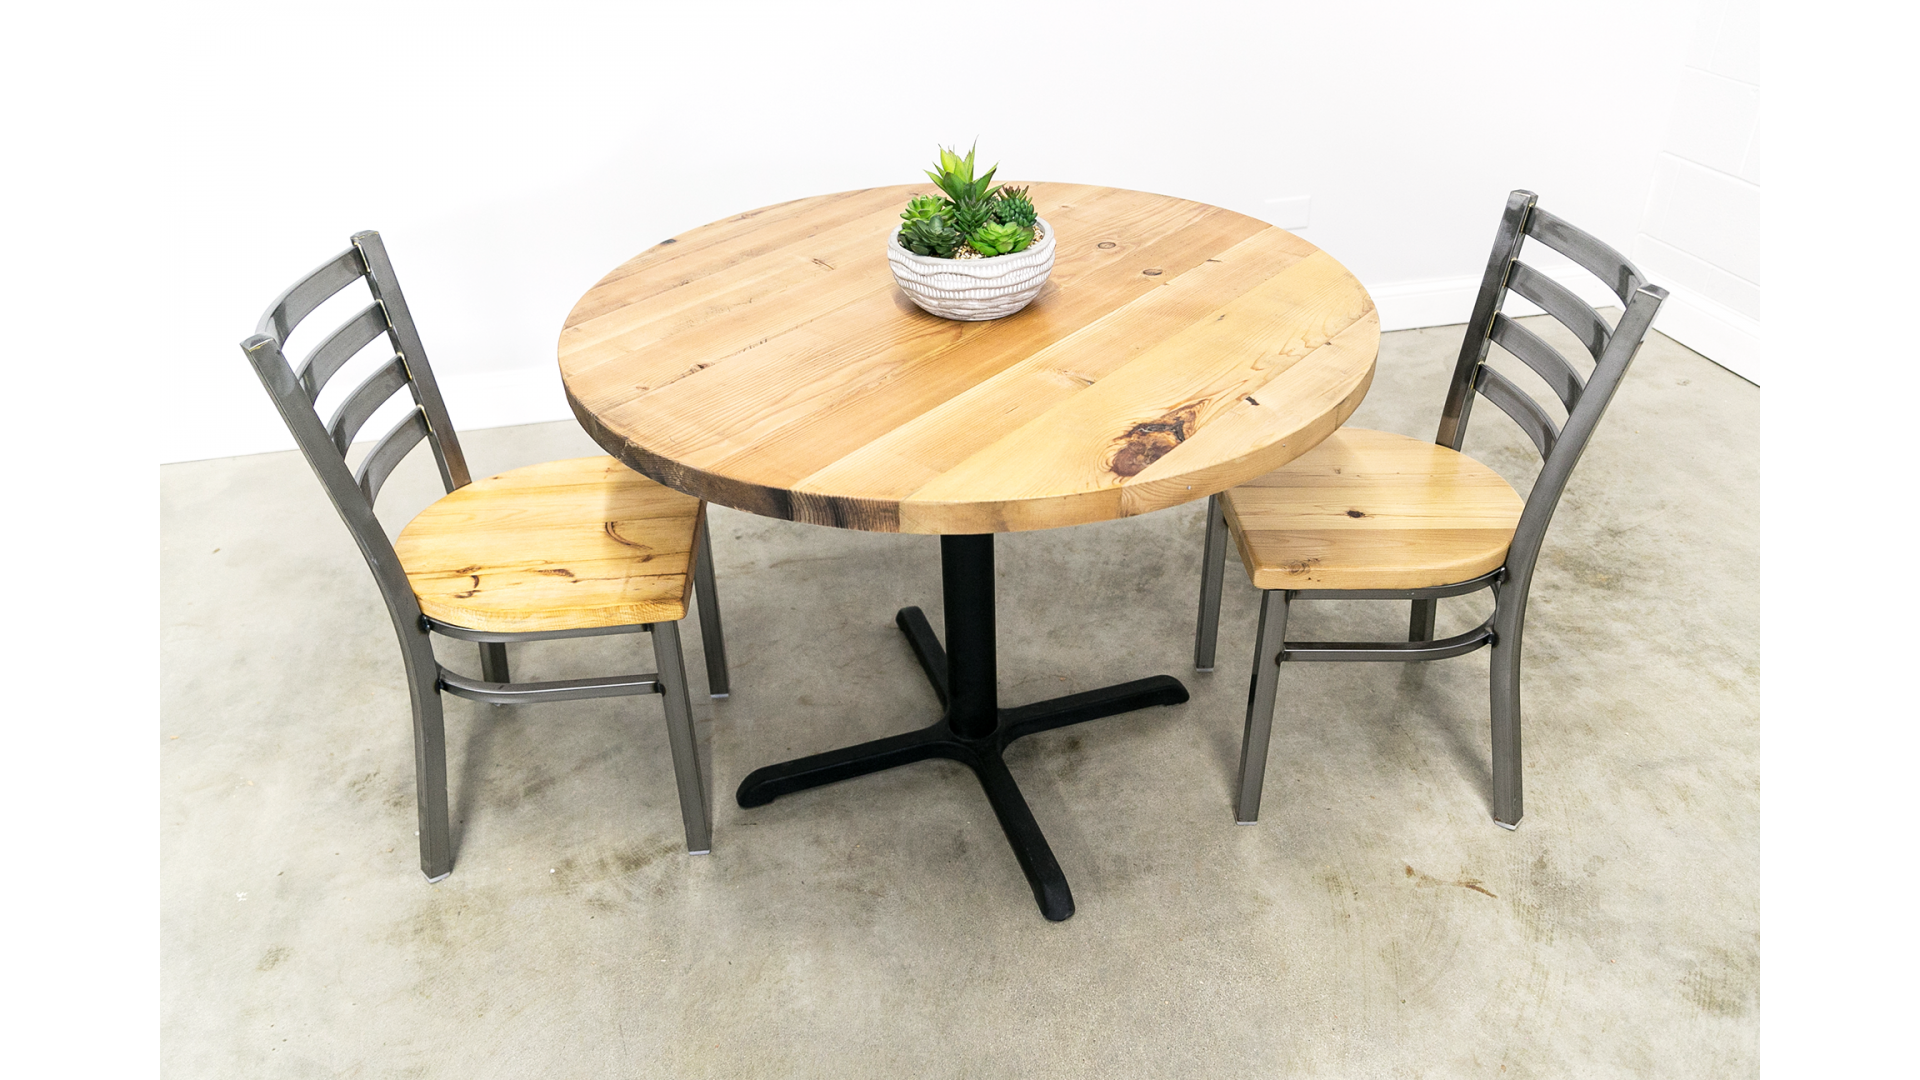 Reclaimed Wood Round Pedestal Table